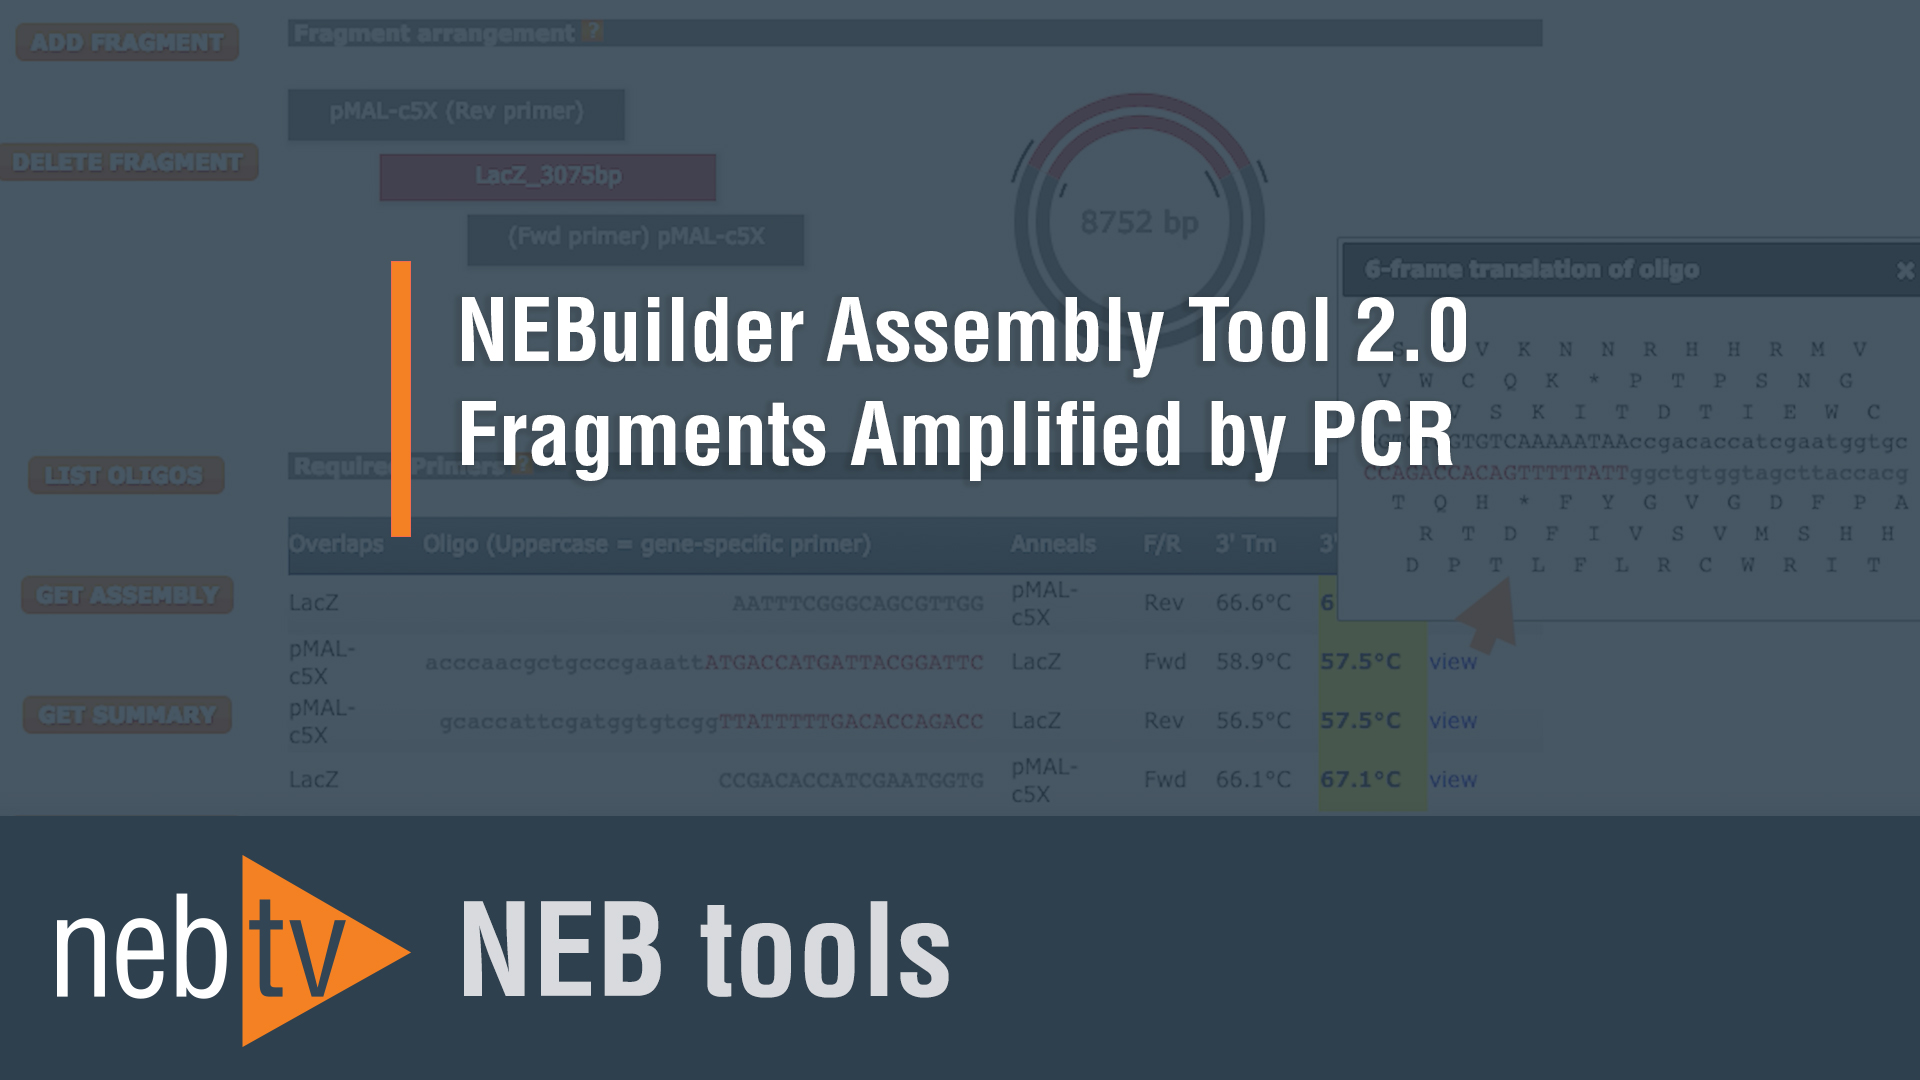 NEBTVToolsThumbnailNEBuilderAssemblyTool20Fragments Amplified by PCR